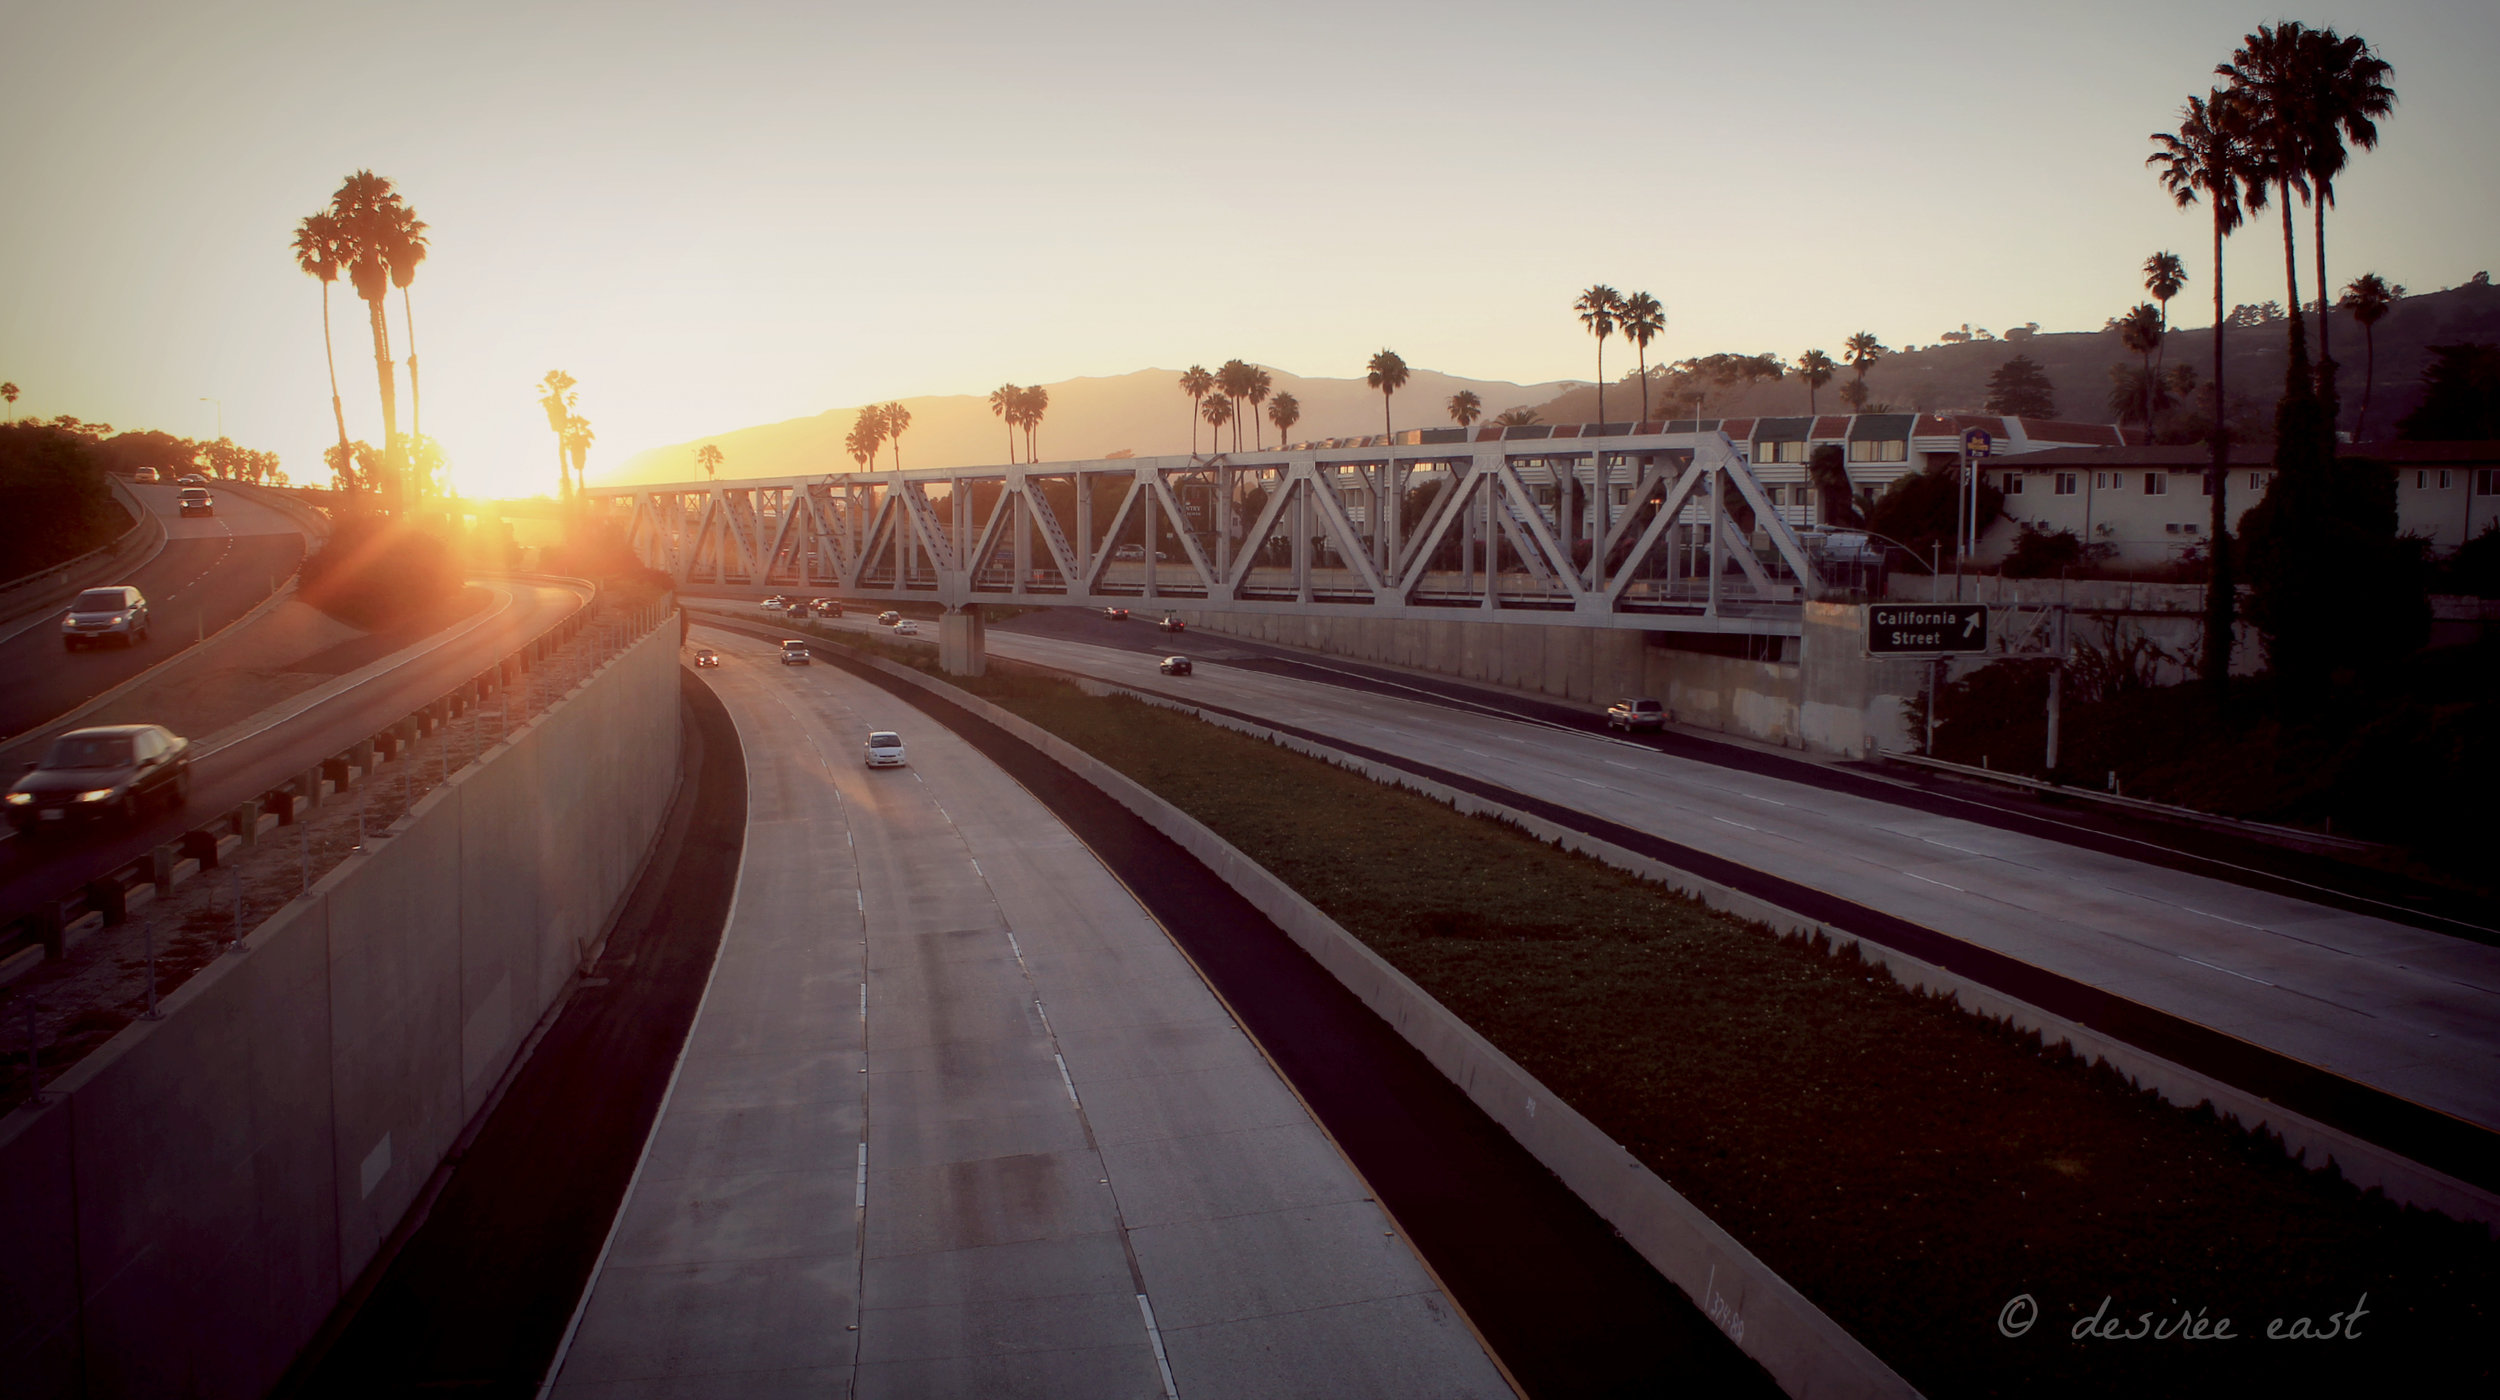 california street bridge train tracks. ventura, california. photo by desiree east